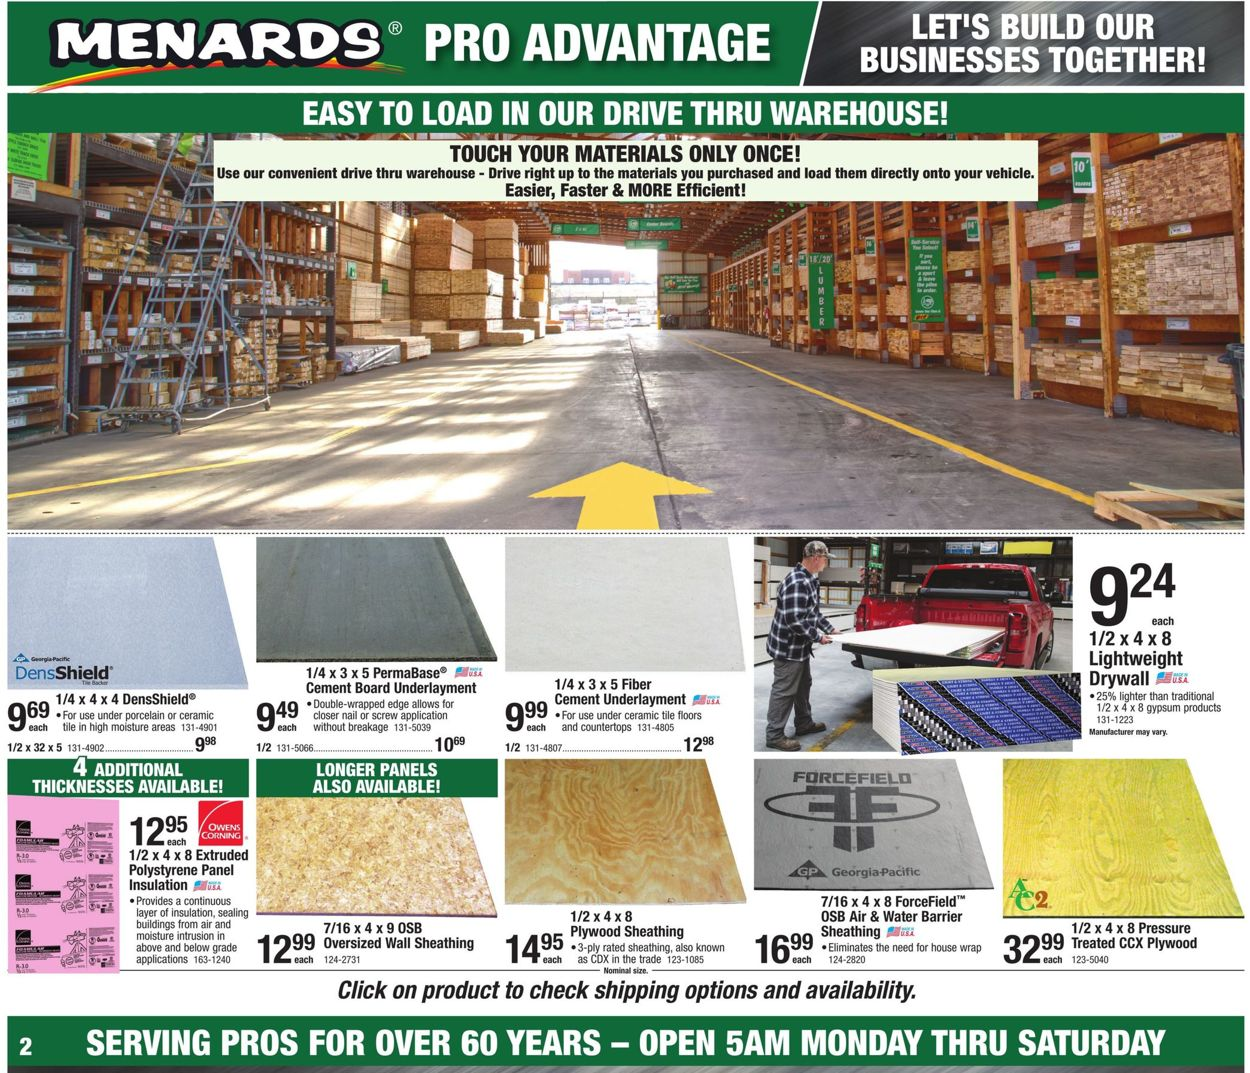 Menards Current weekly ad 07/28 - 08/03/2019 [2] - frequent